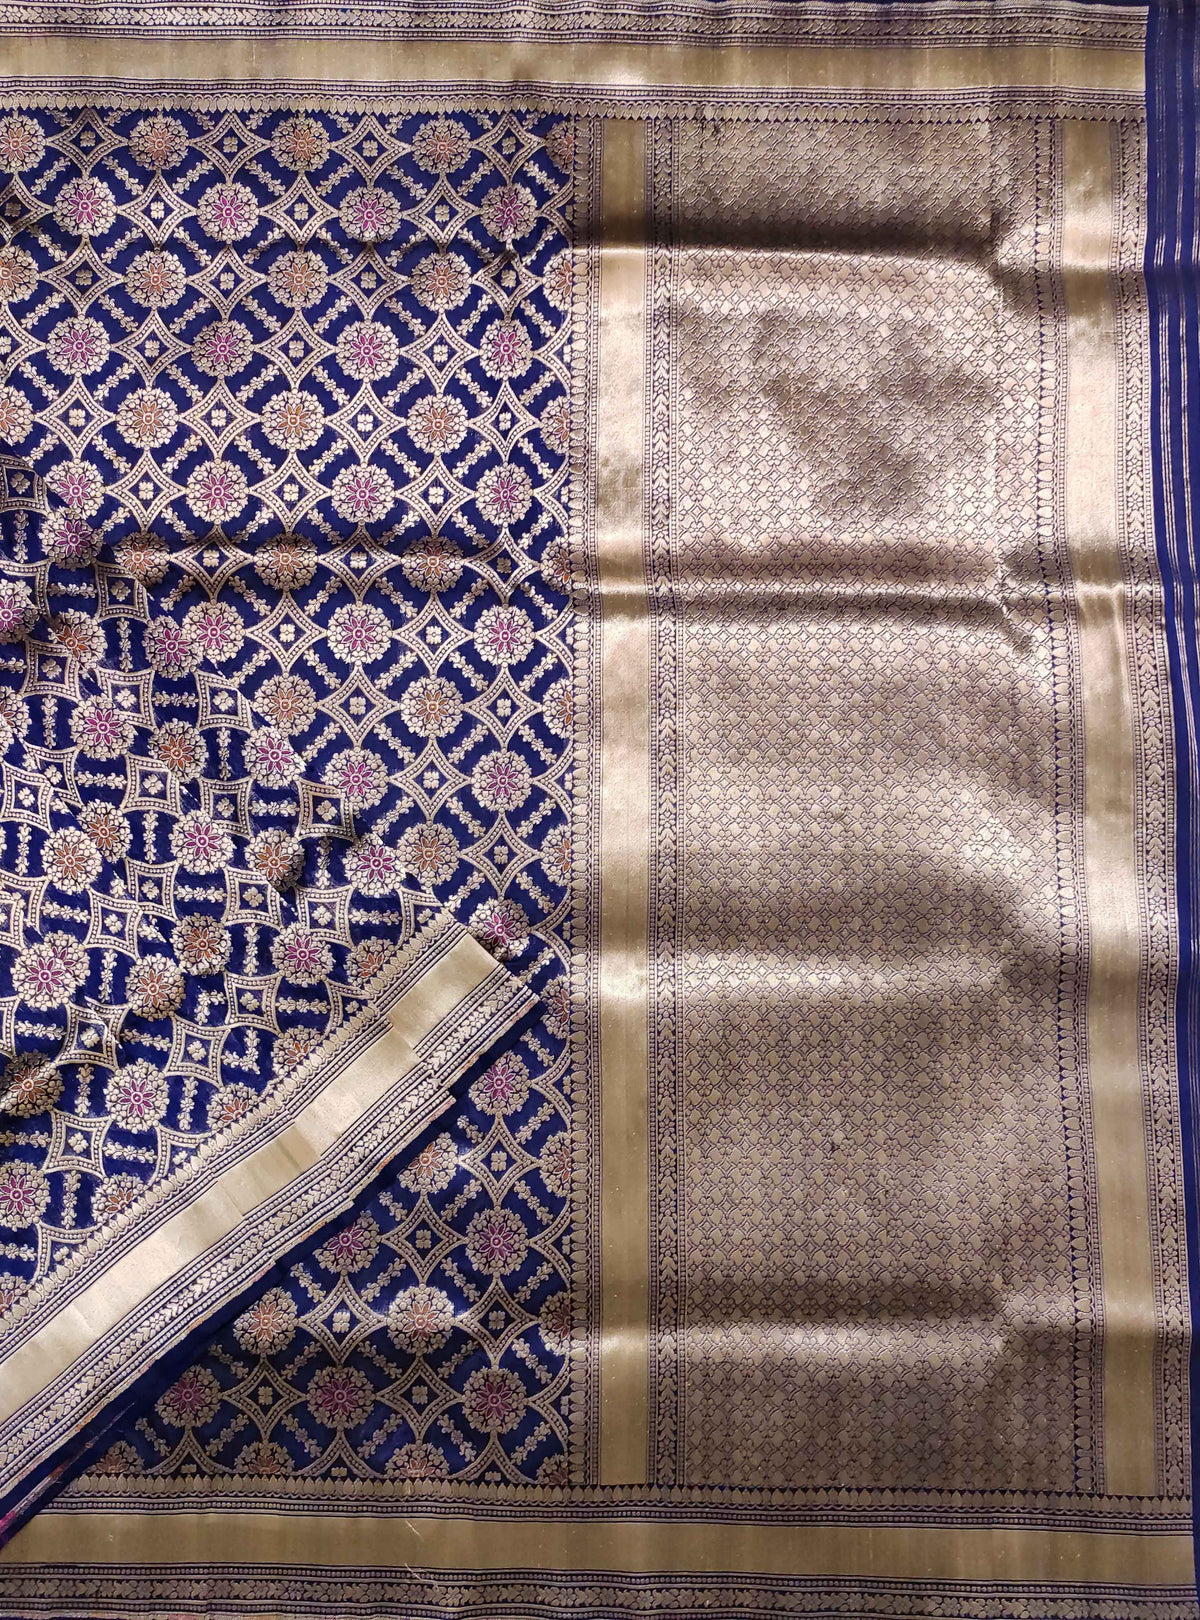 Blue Katan silk Handloom Banarasi saree with meenedar patola jaal (2) Close up